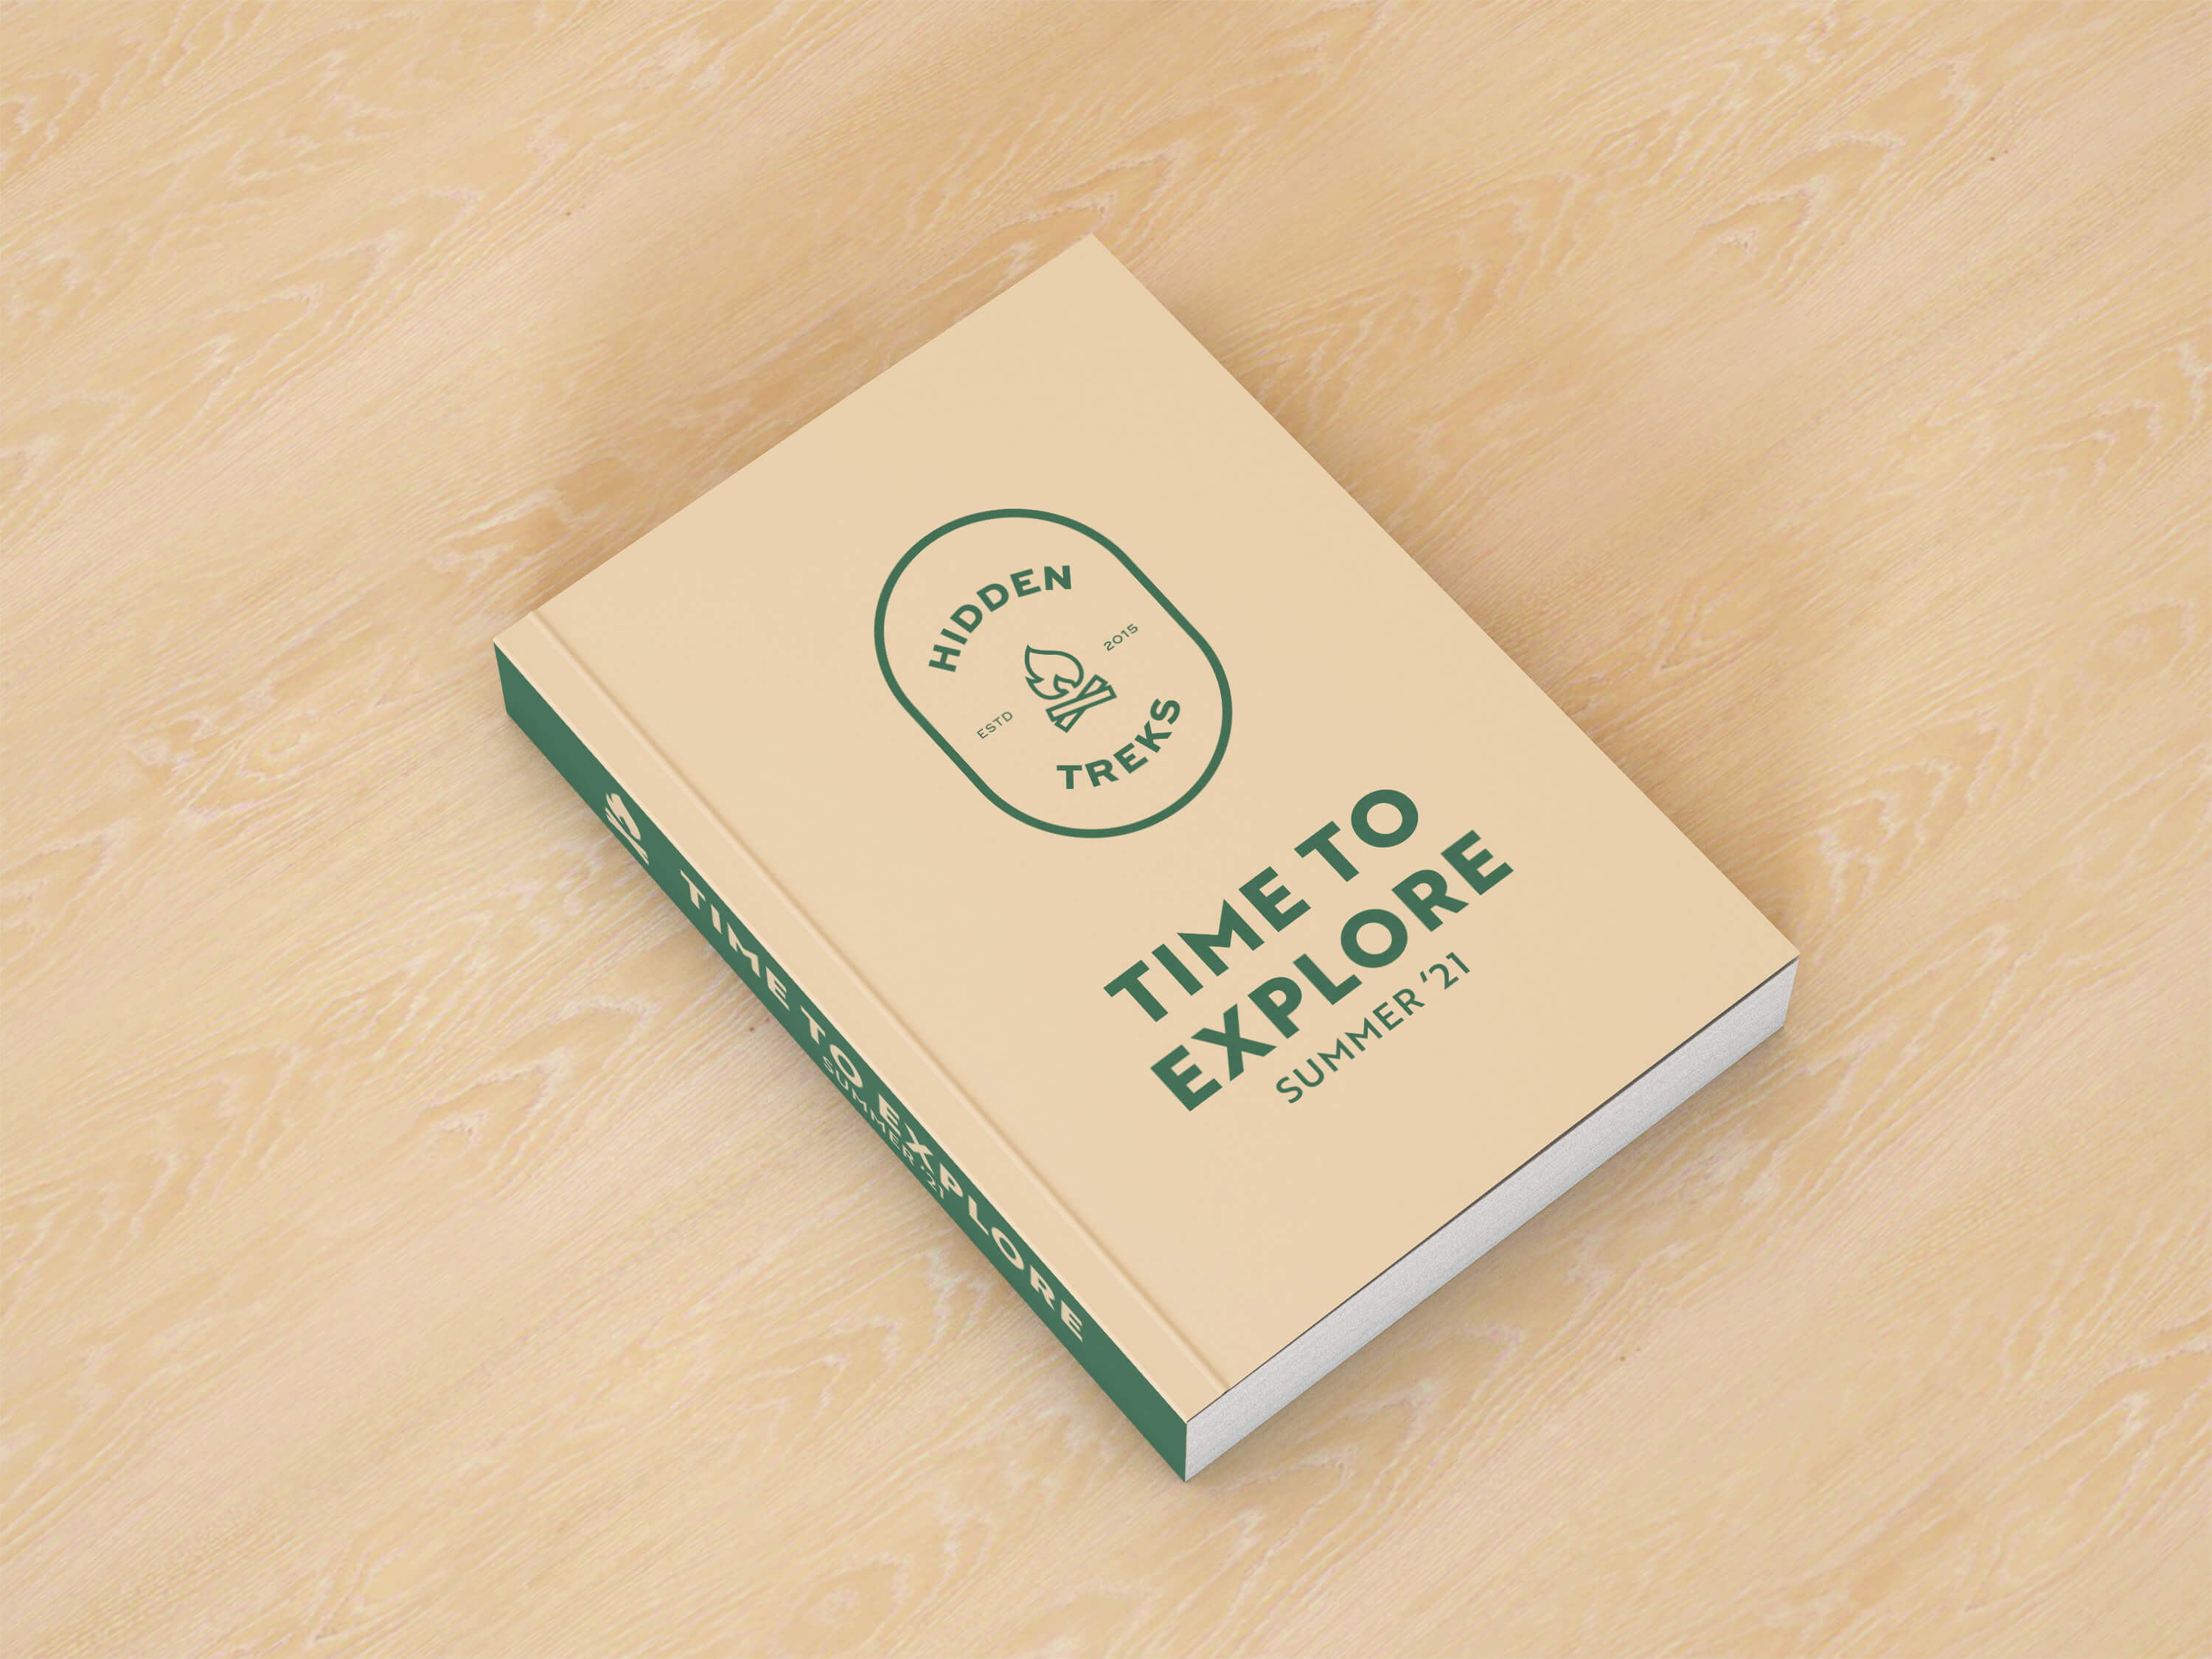 """A book titled """"Time to explore"""" on a wooden surface"""